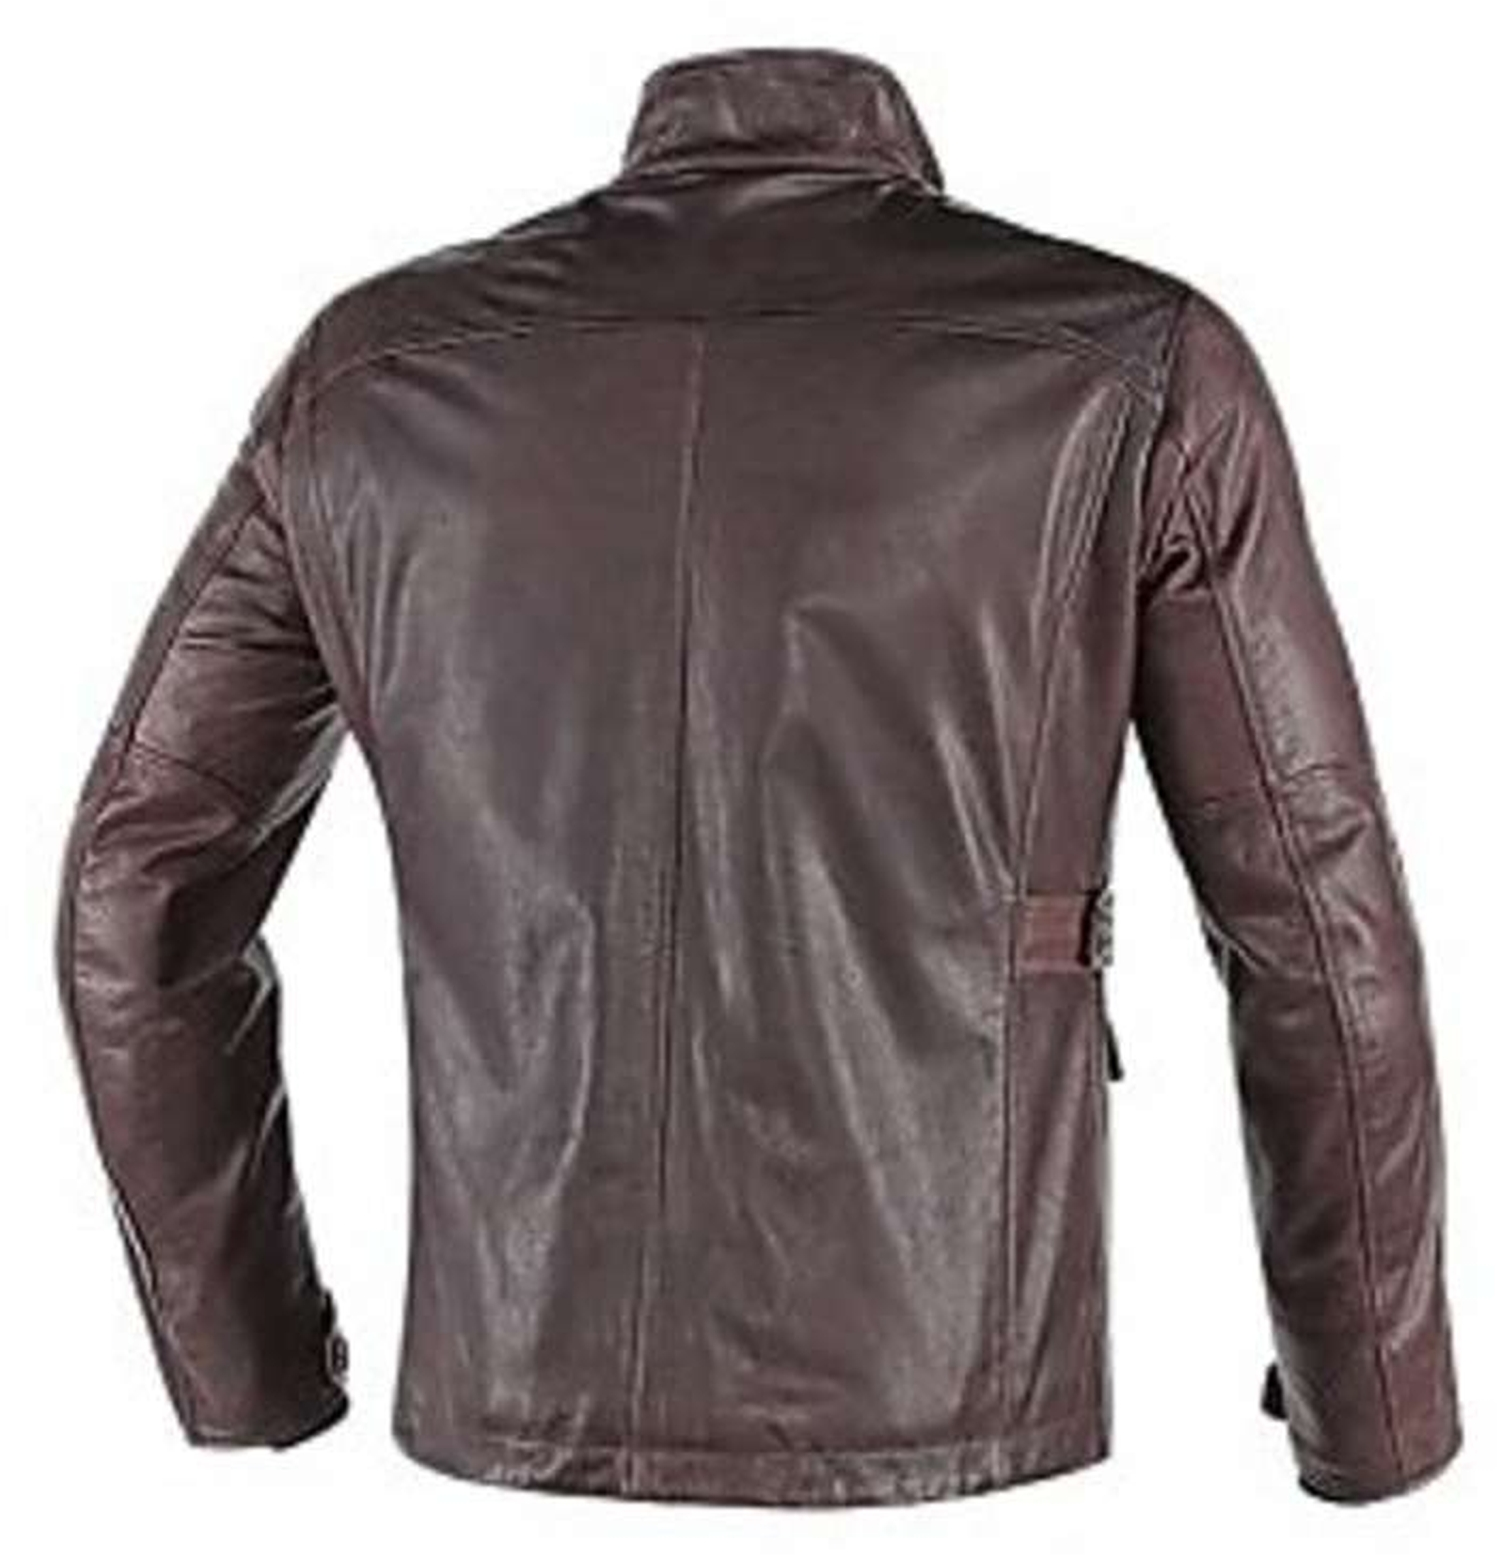 DAINESE GIACCA PELLE HARRISON